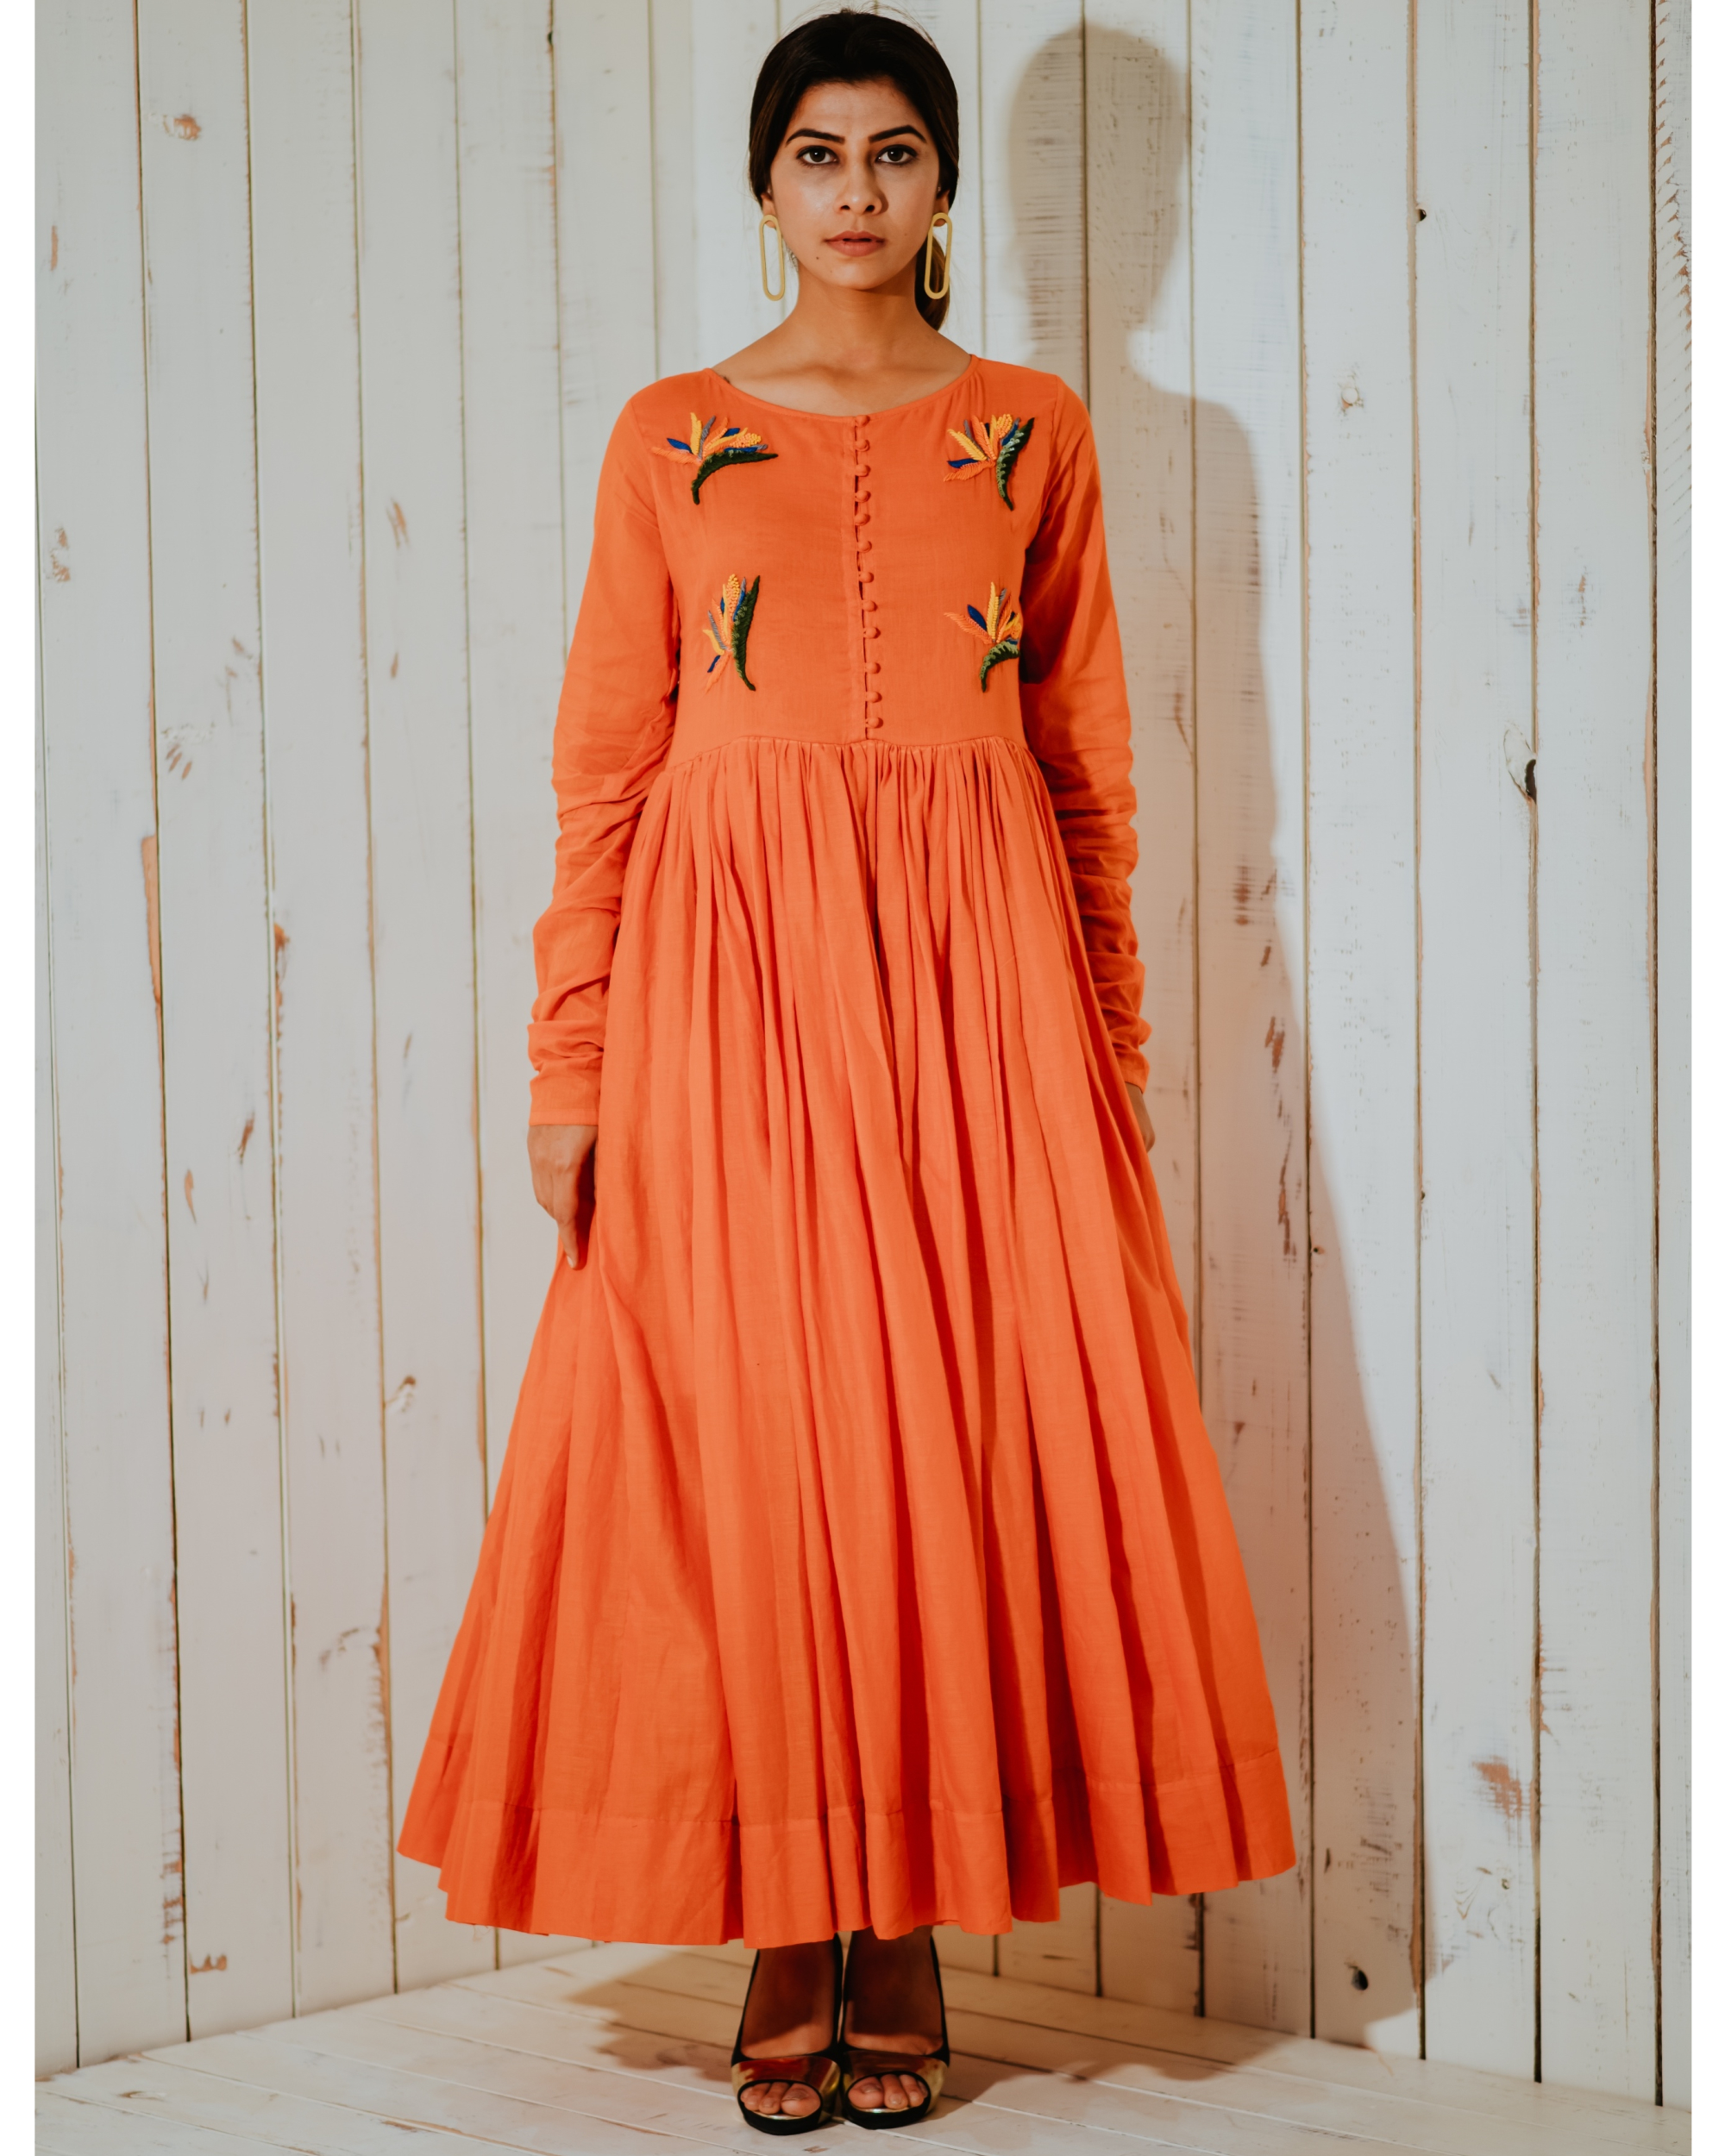 Tangerine lost paradise embroidered maxi